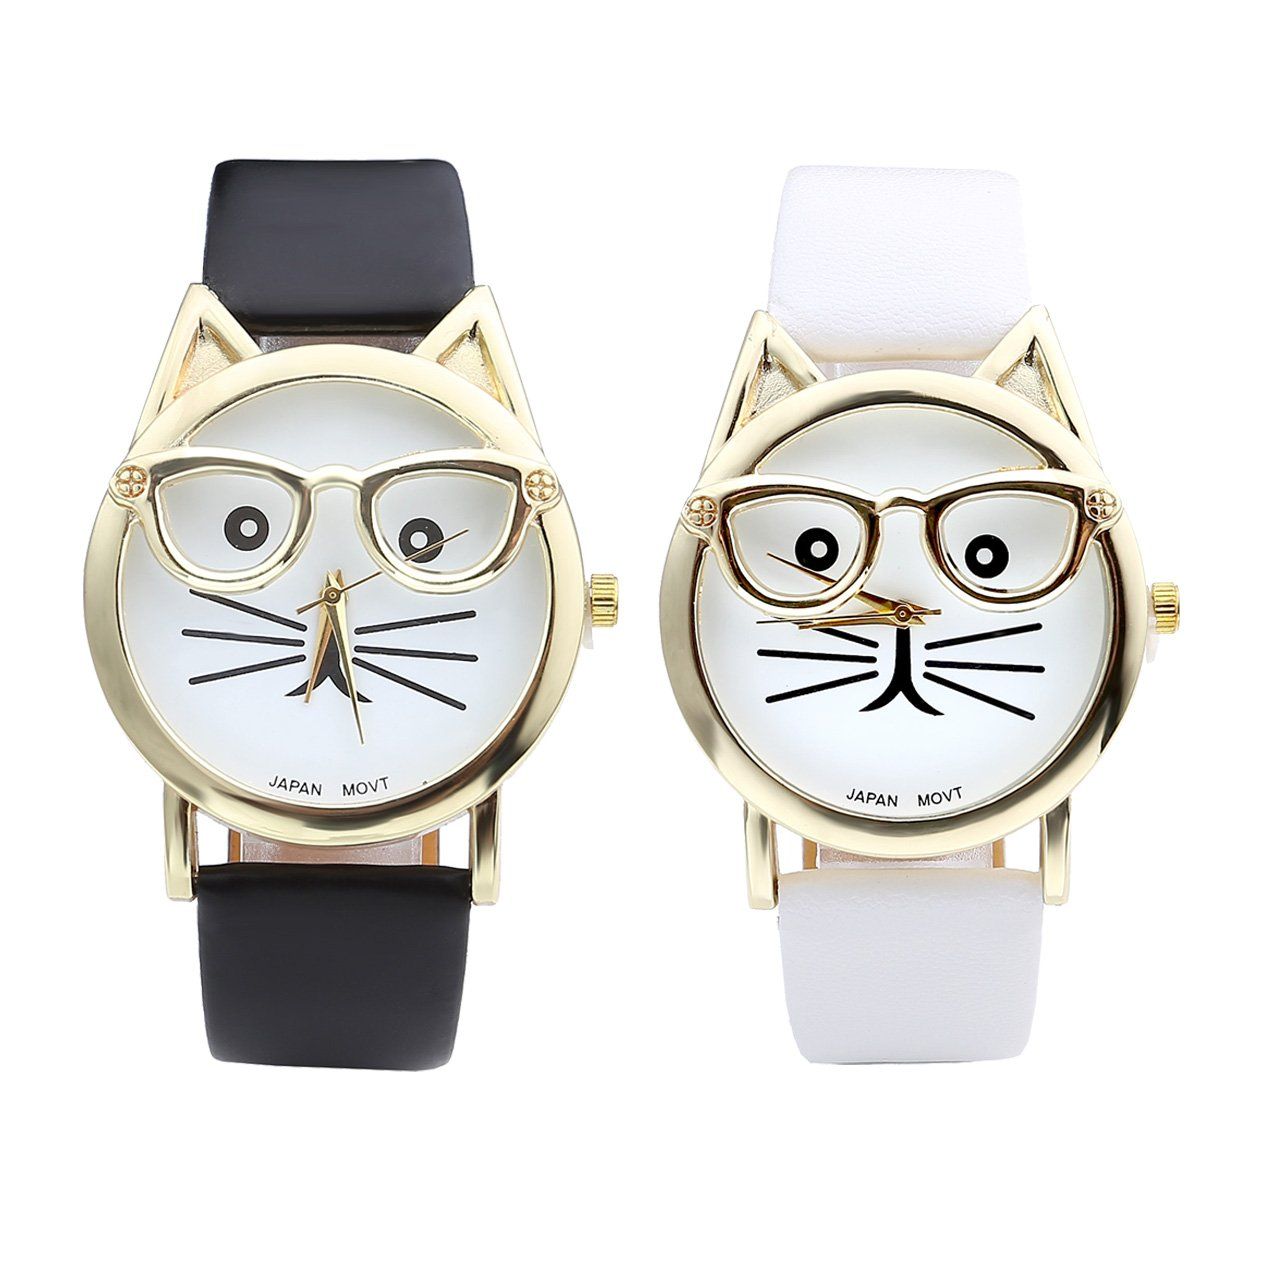 Top Plaza Fashion Women's Platinum Plated Mini Cat Glasses Analog Quartz Watch, PU Leather Strap Gold Tone, Black/White, Pack of 2